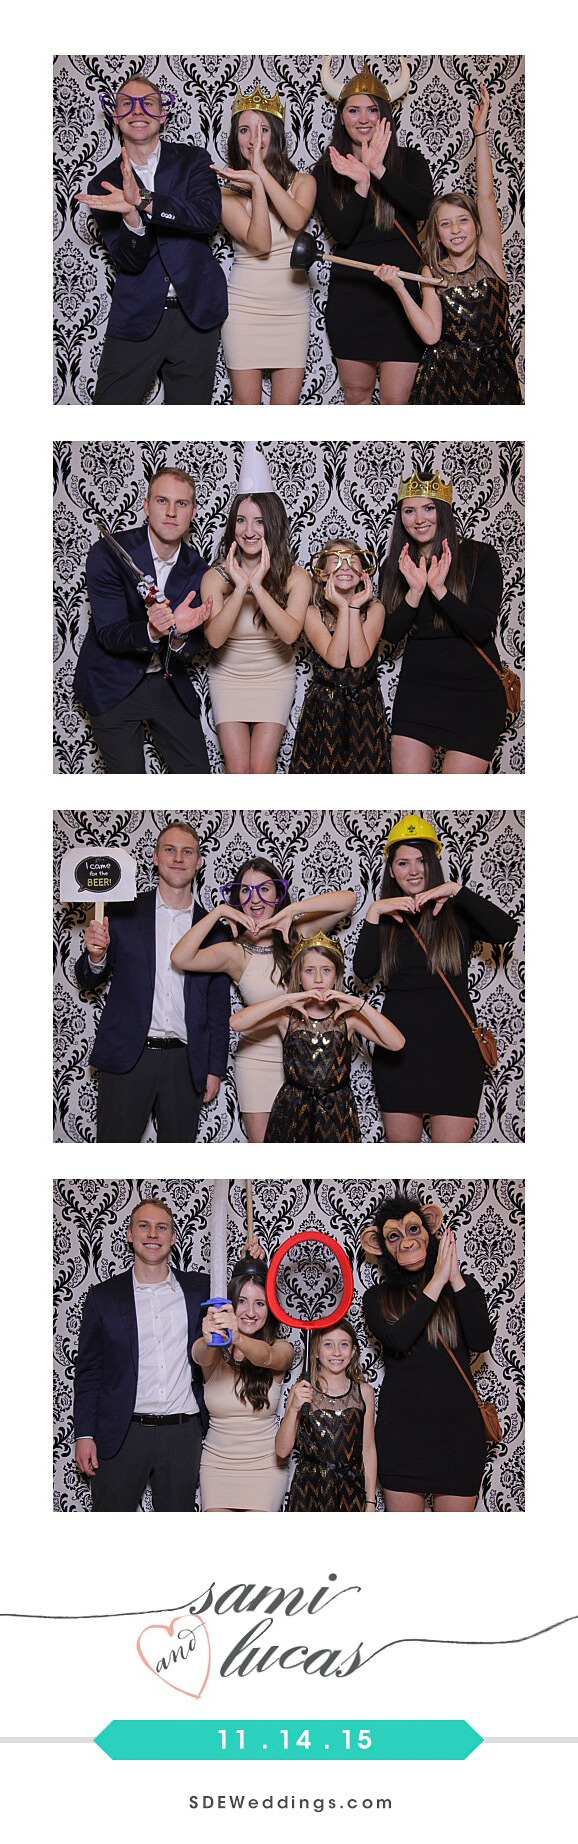 Toronto Paradise Banquet Hall Wedding Photo Booth Rental 4